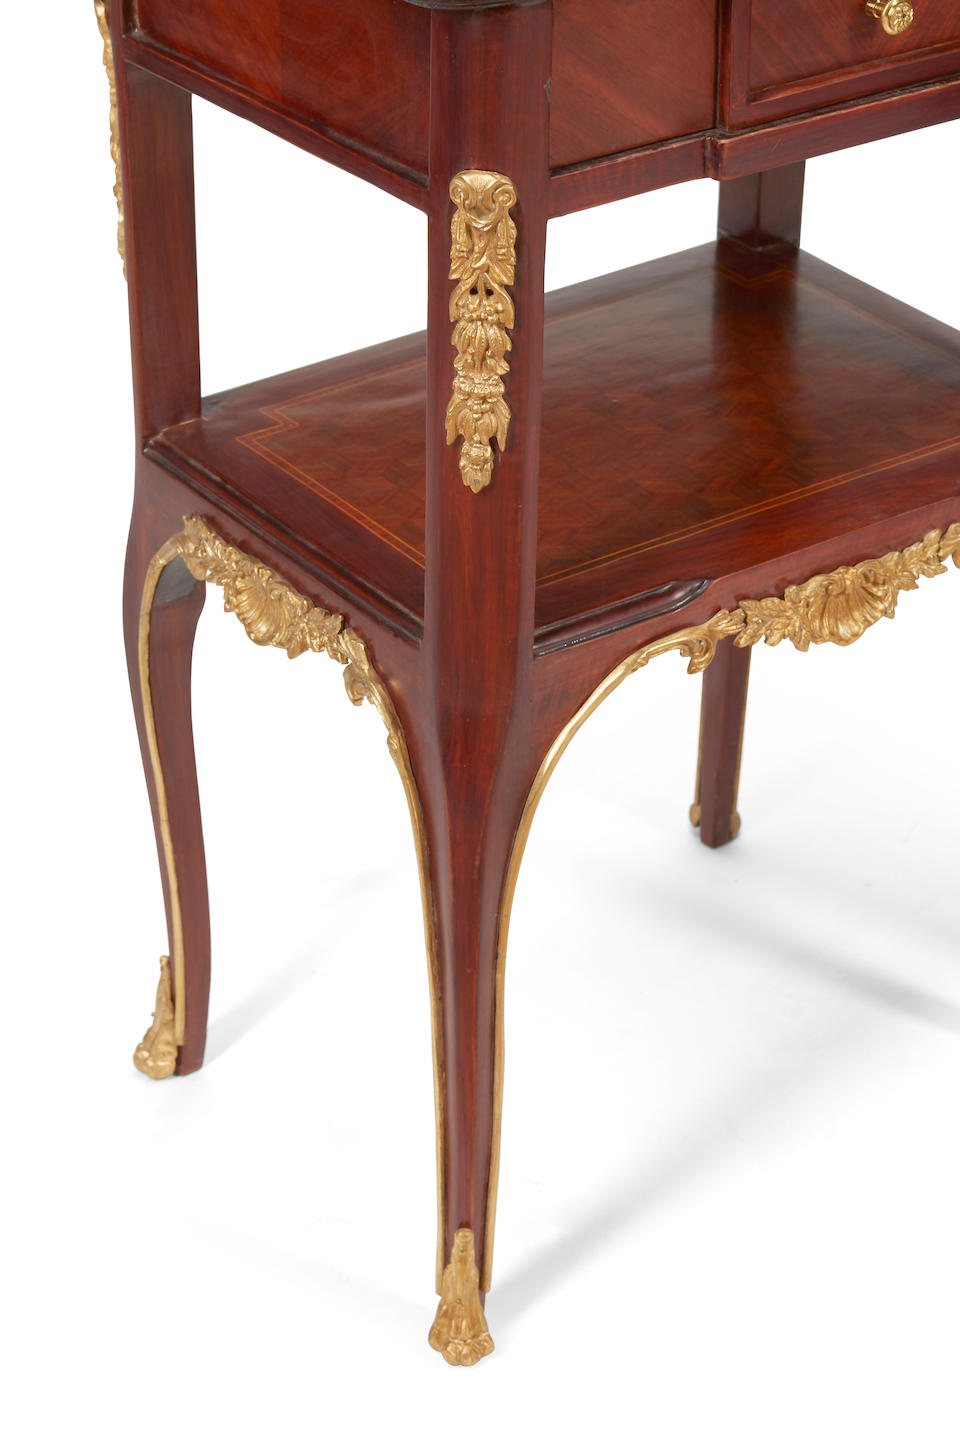 A pair of transitional Louis XV/XVI style gilt bronze mounted parquetry side tables